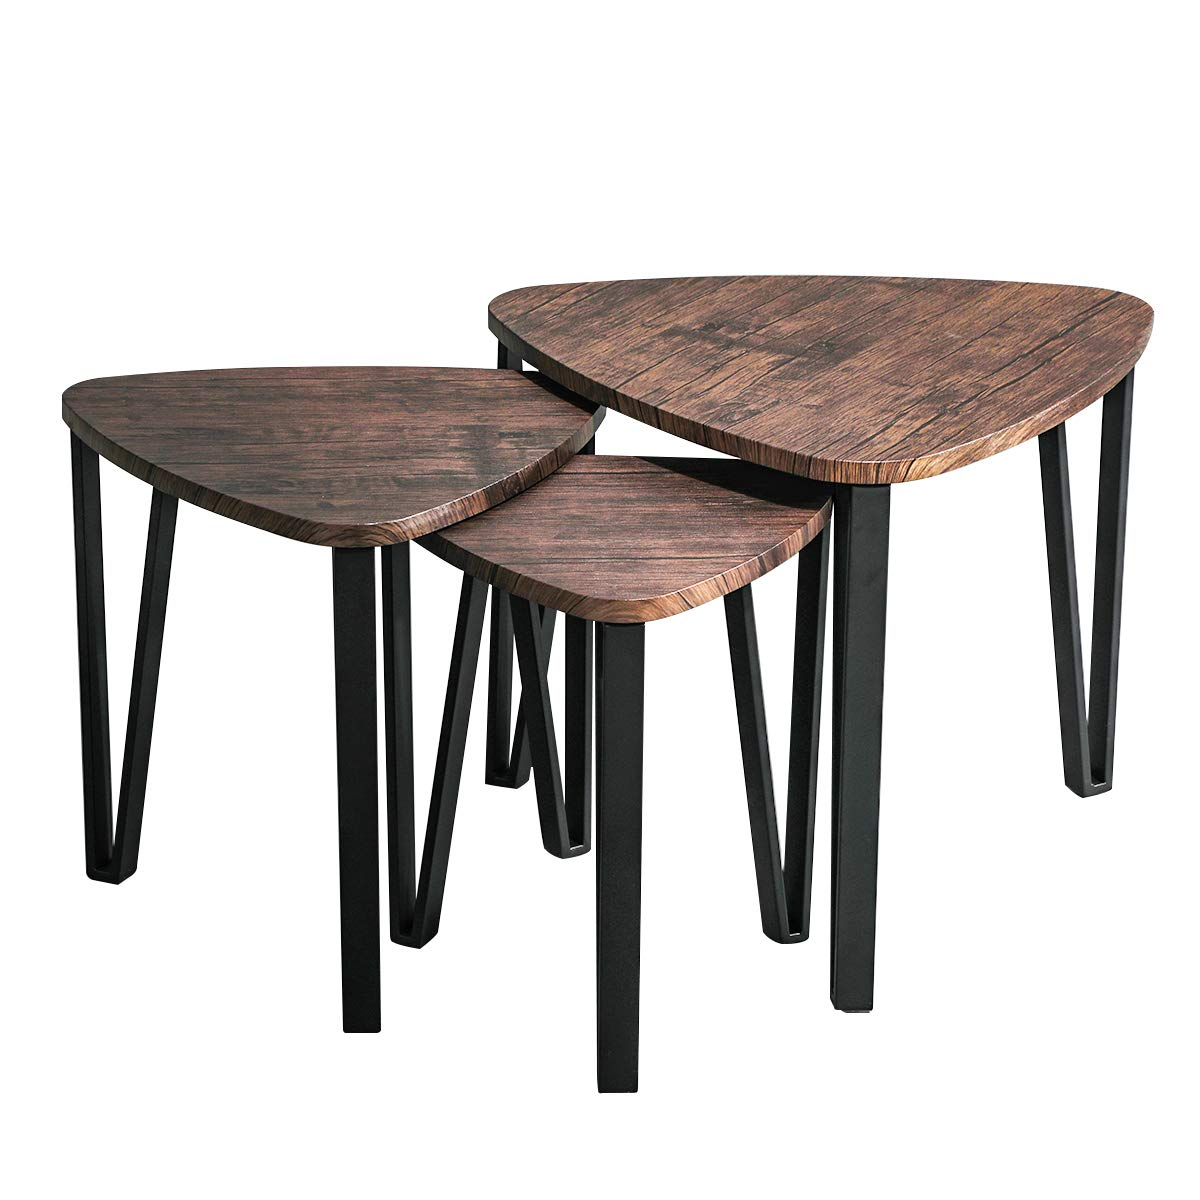 Industrial Nesting-Tables Living Room Coffee Table Sets of 3 Stacking End Side Tables Nightstands Vintage Night Tables for Bedroom Home Office Telephone Table Kids Nightstands,Brown-CAS020